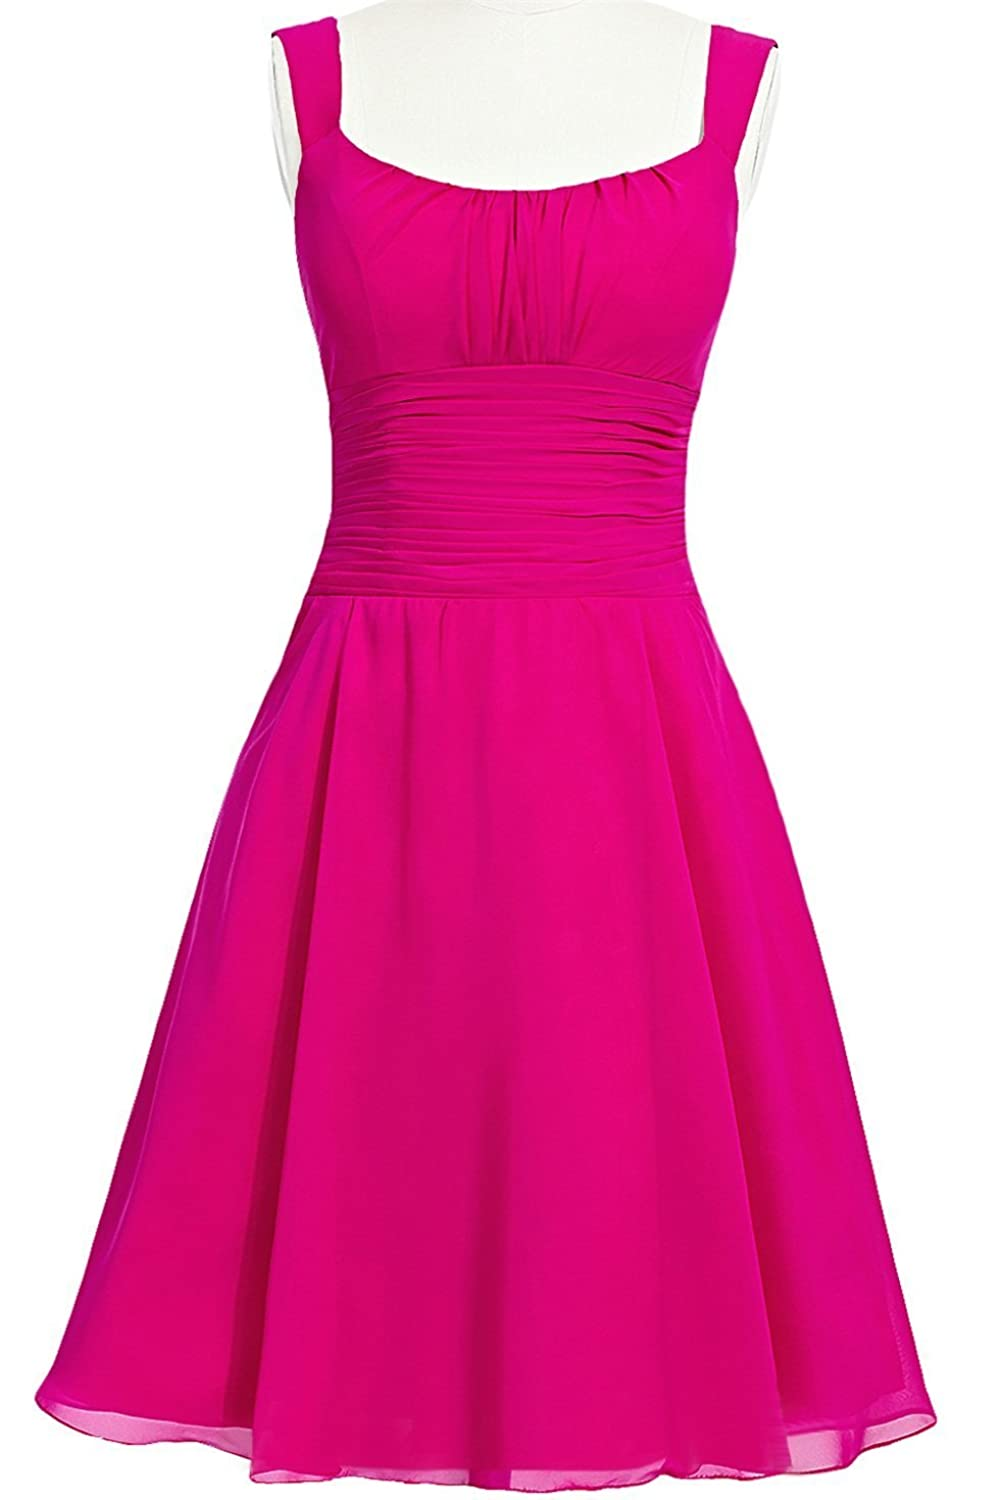 MittyDressesWomens Evening Homecoming Prom Party Cocktail Dress Size 14 US Fuchsia